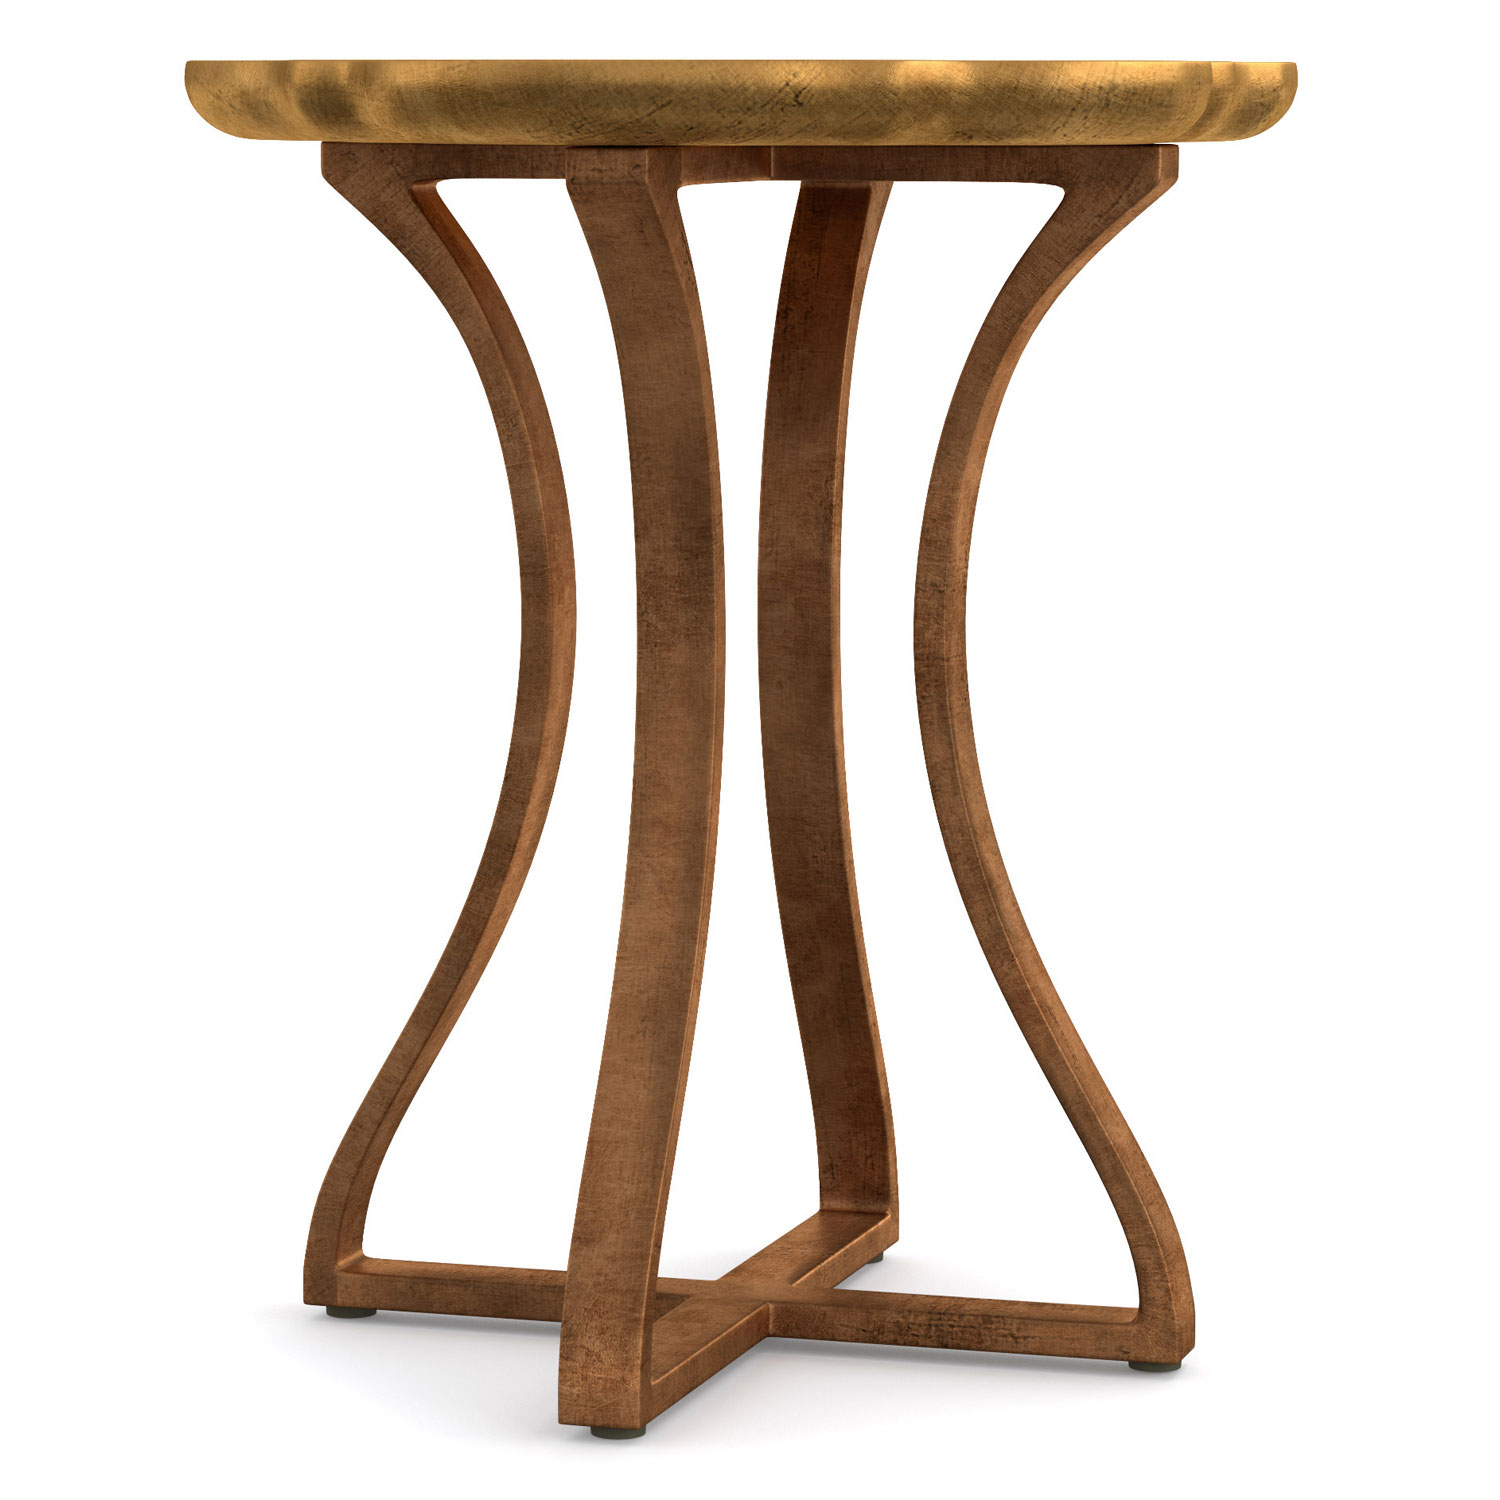 hooker furniture gold bois round accent table bellacor hammered hover zoom deep console bunnings garden chest kitchen island trolley mid century modern end tables small lamp duke